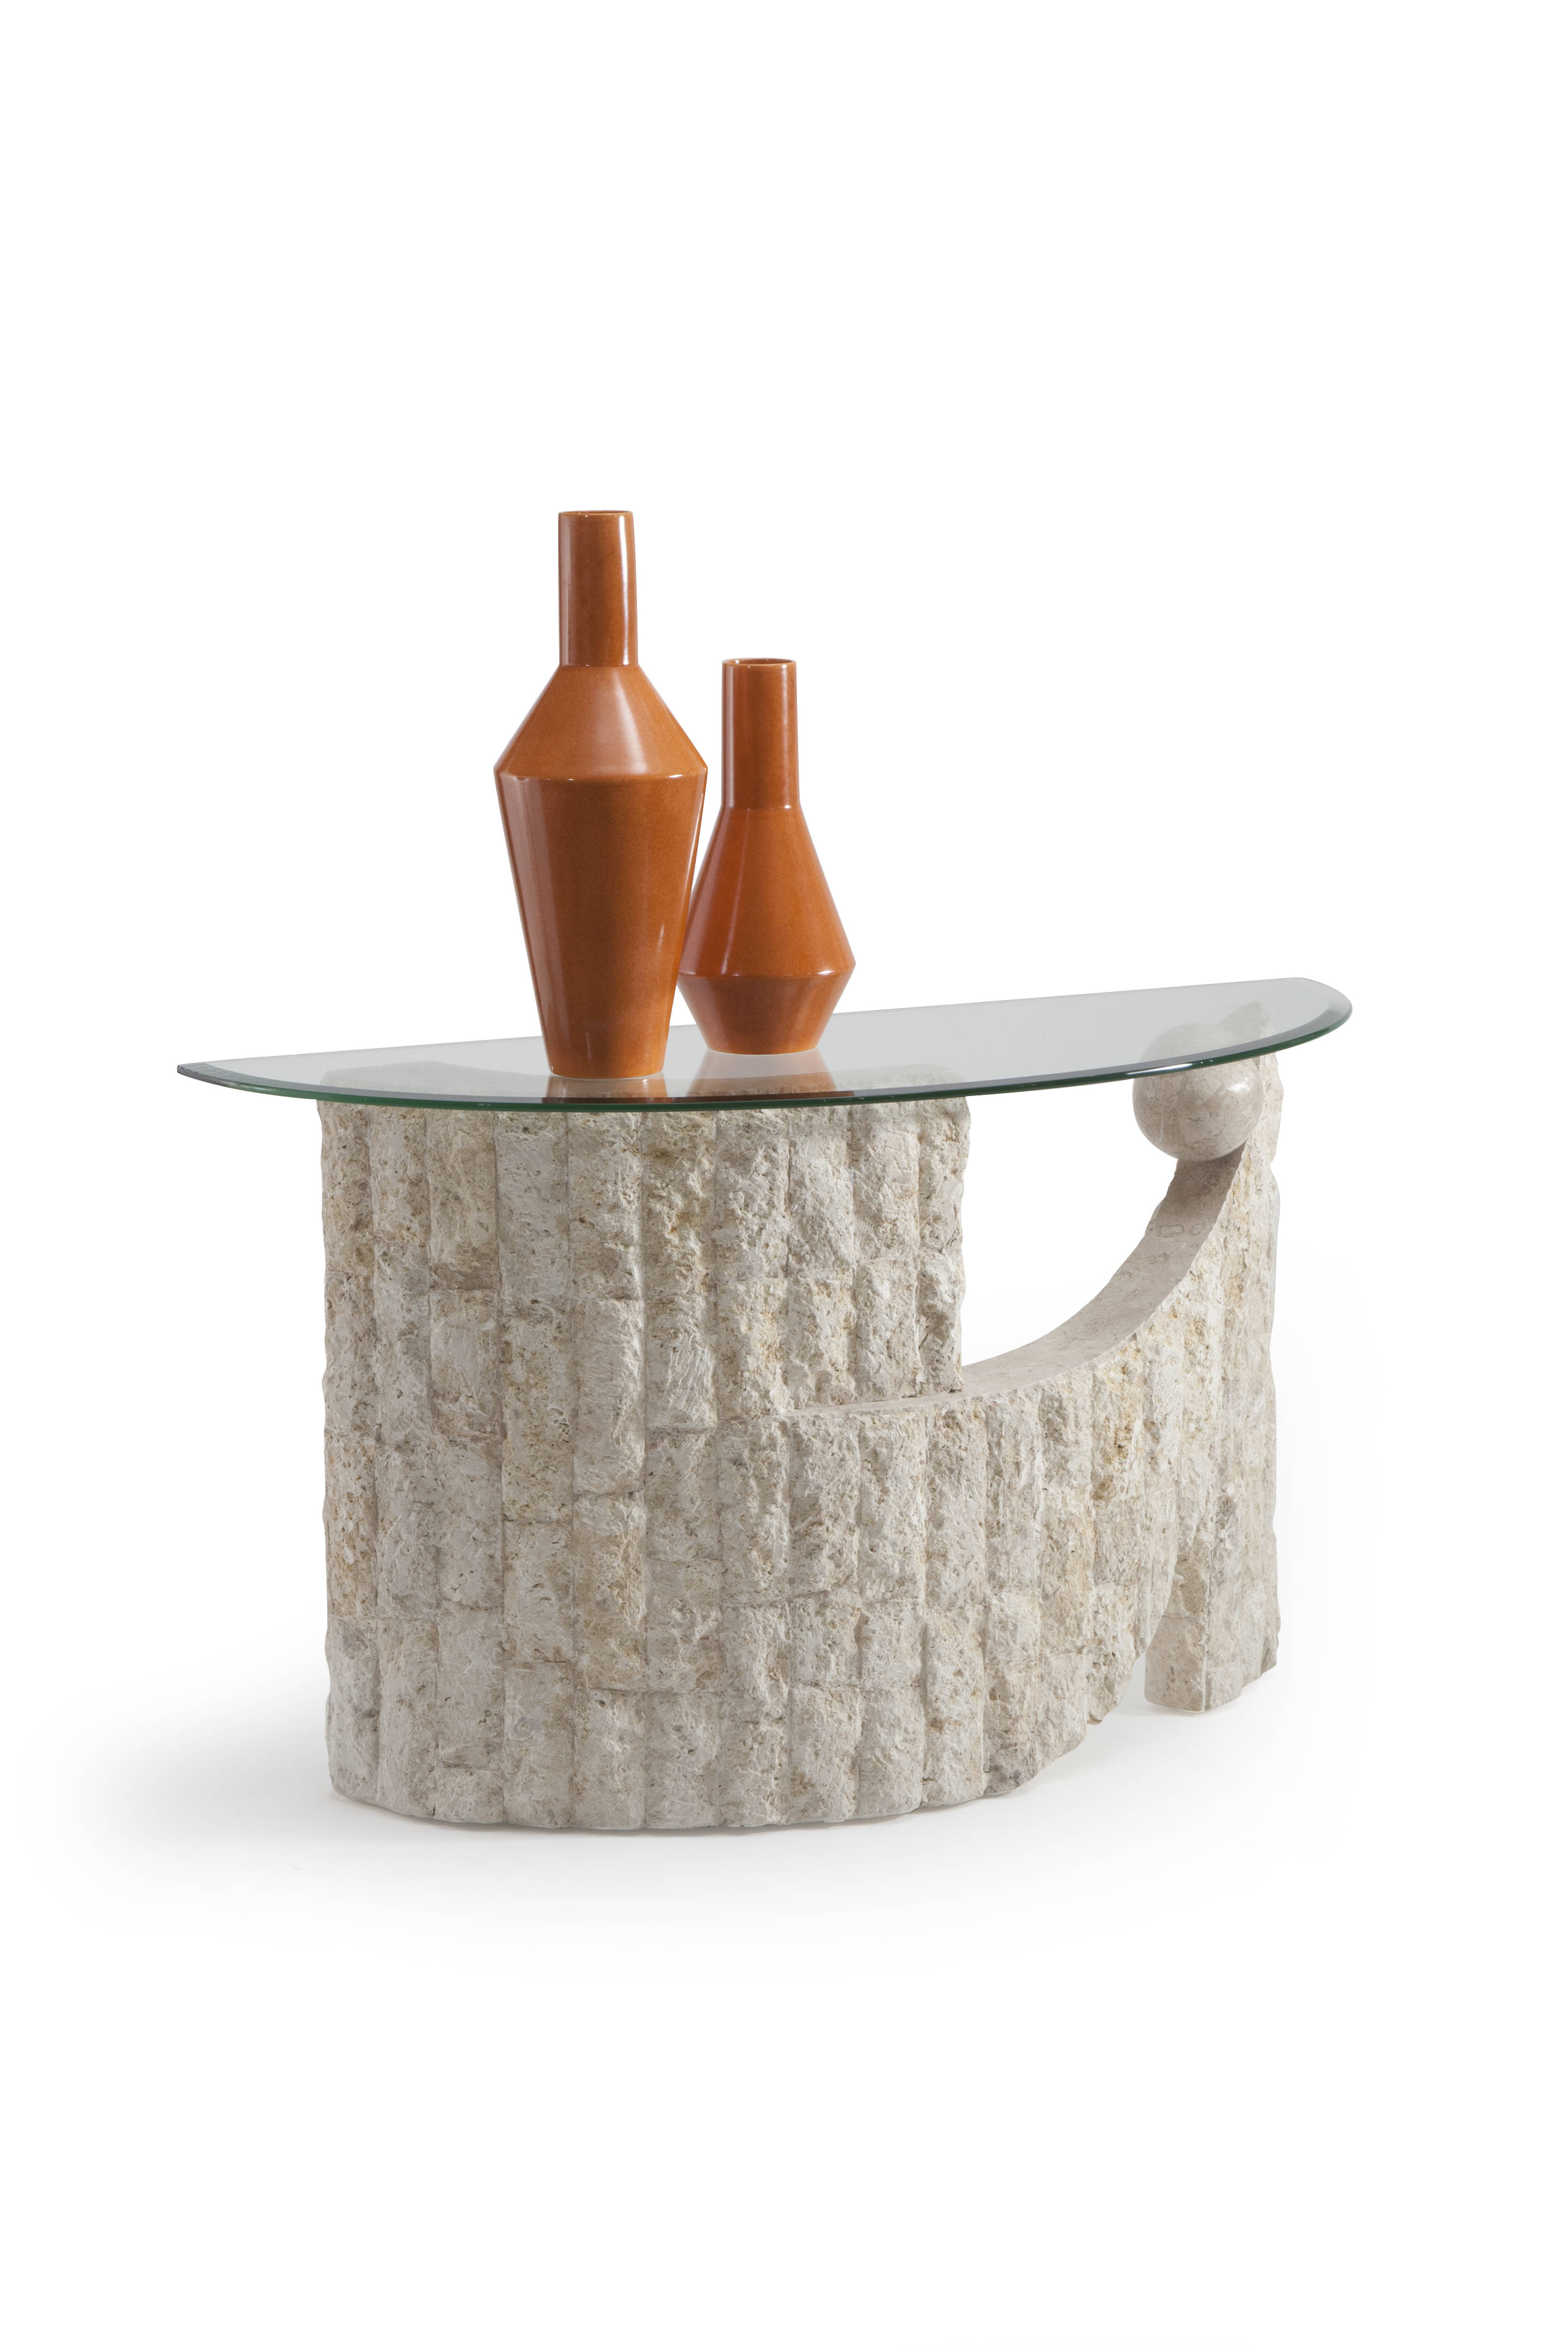 Magnussen Home Ponte Vedra Natural Sofa Table The Classy Home